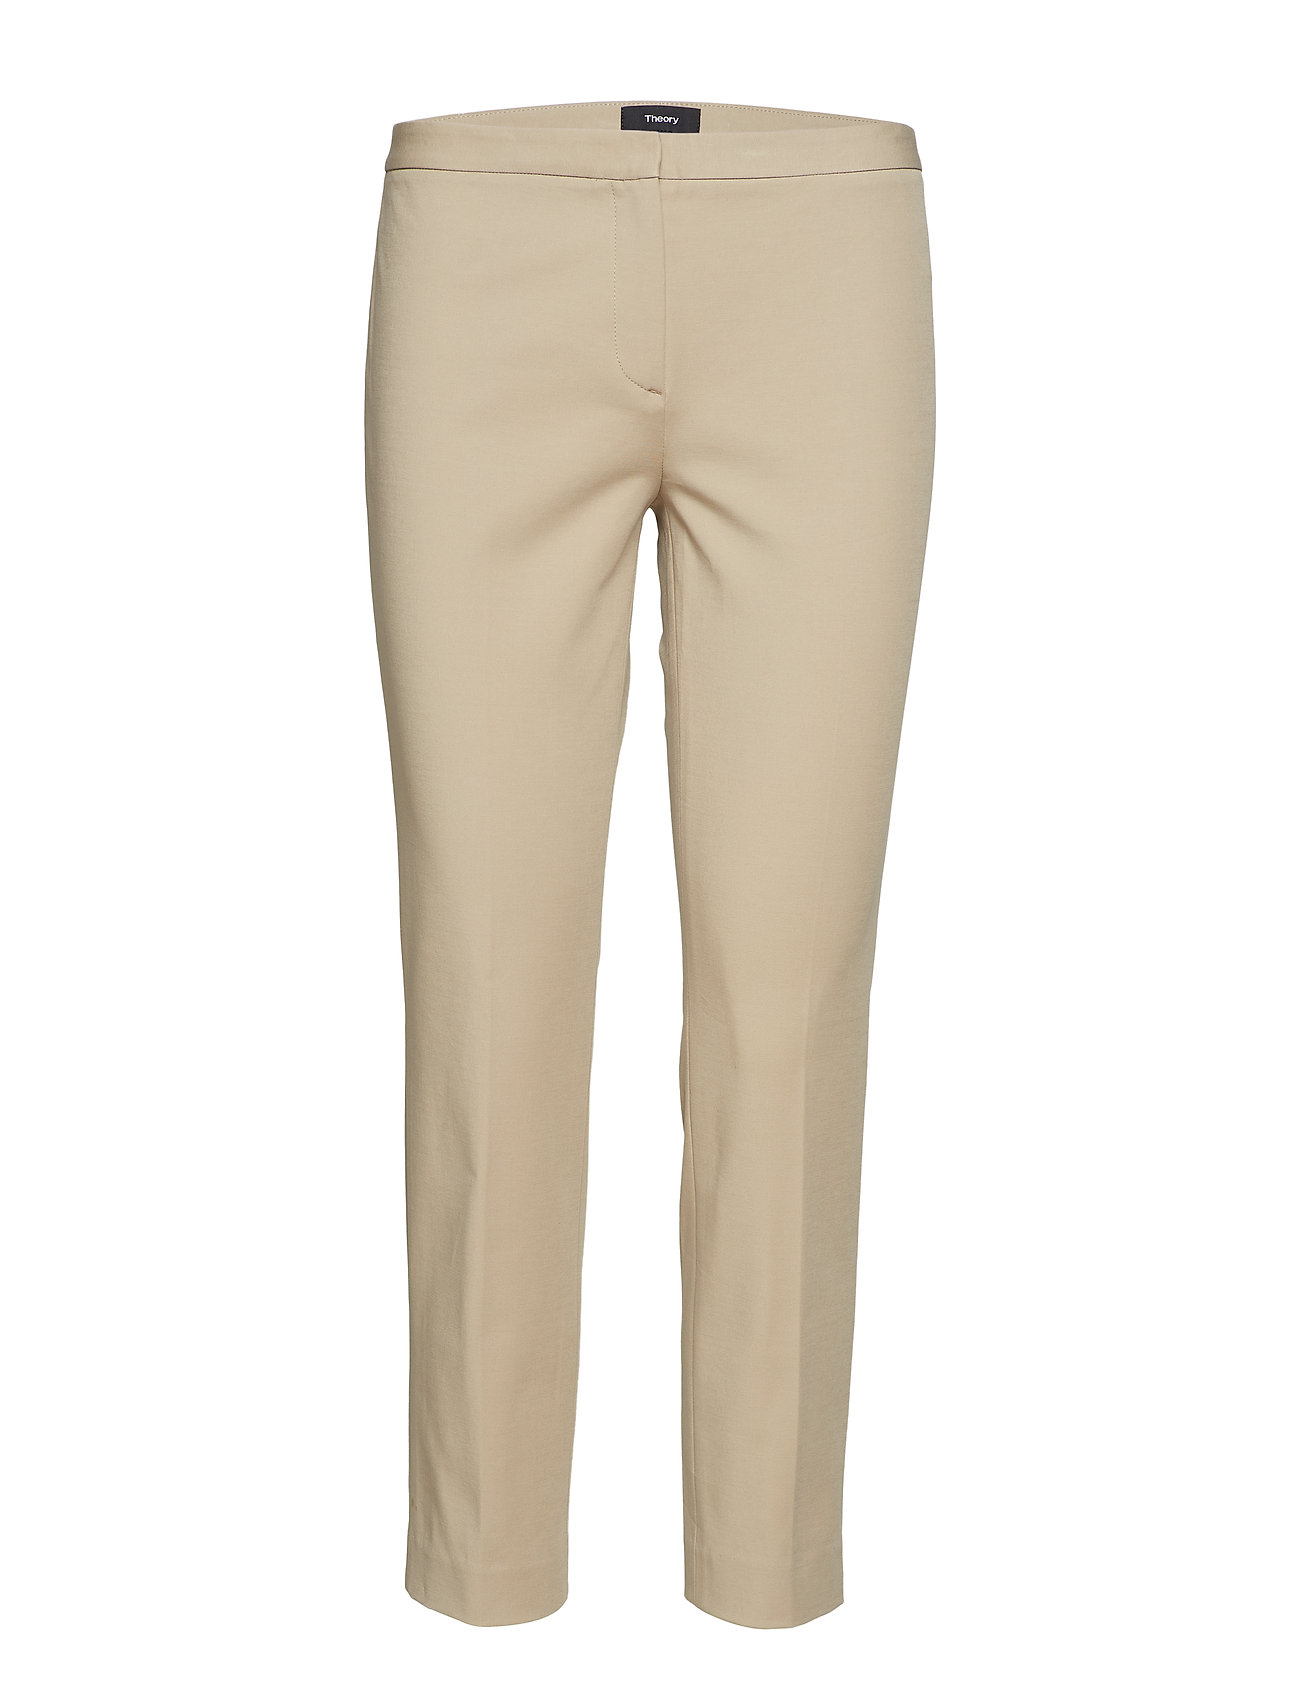 Image of Classic Skinny Pant1 Smalle Bukser Skinny Pants Beige THEORY (3105945483)